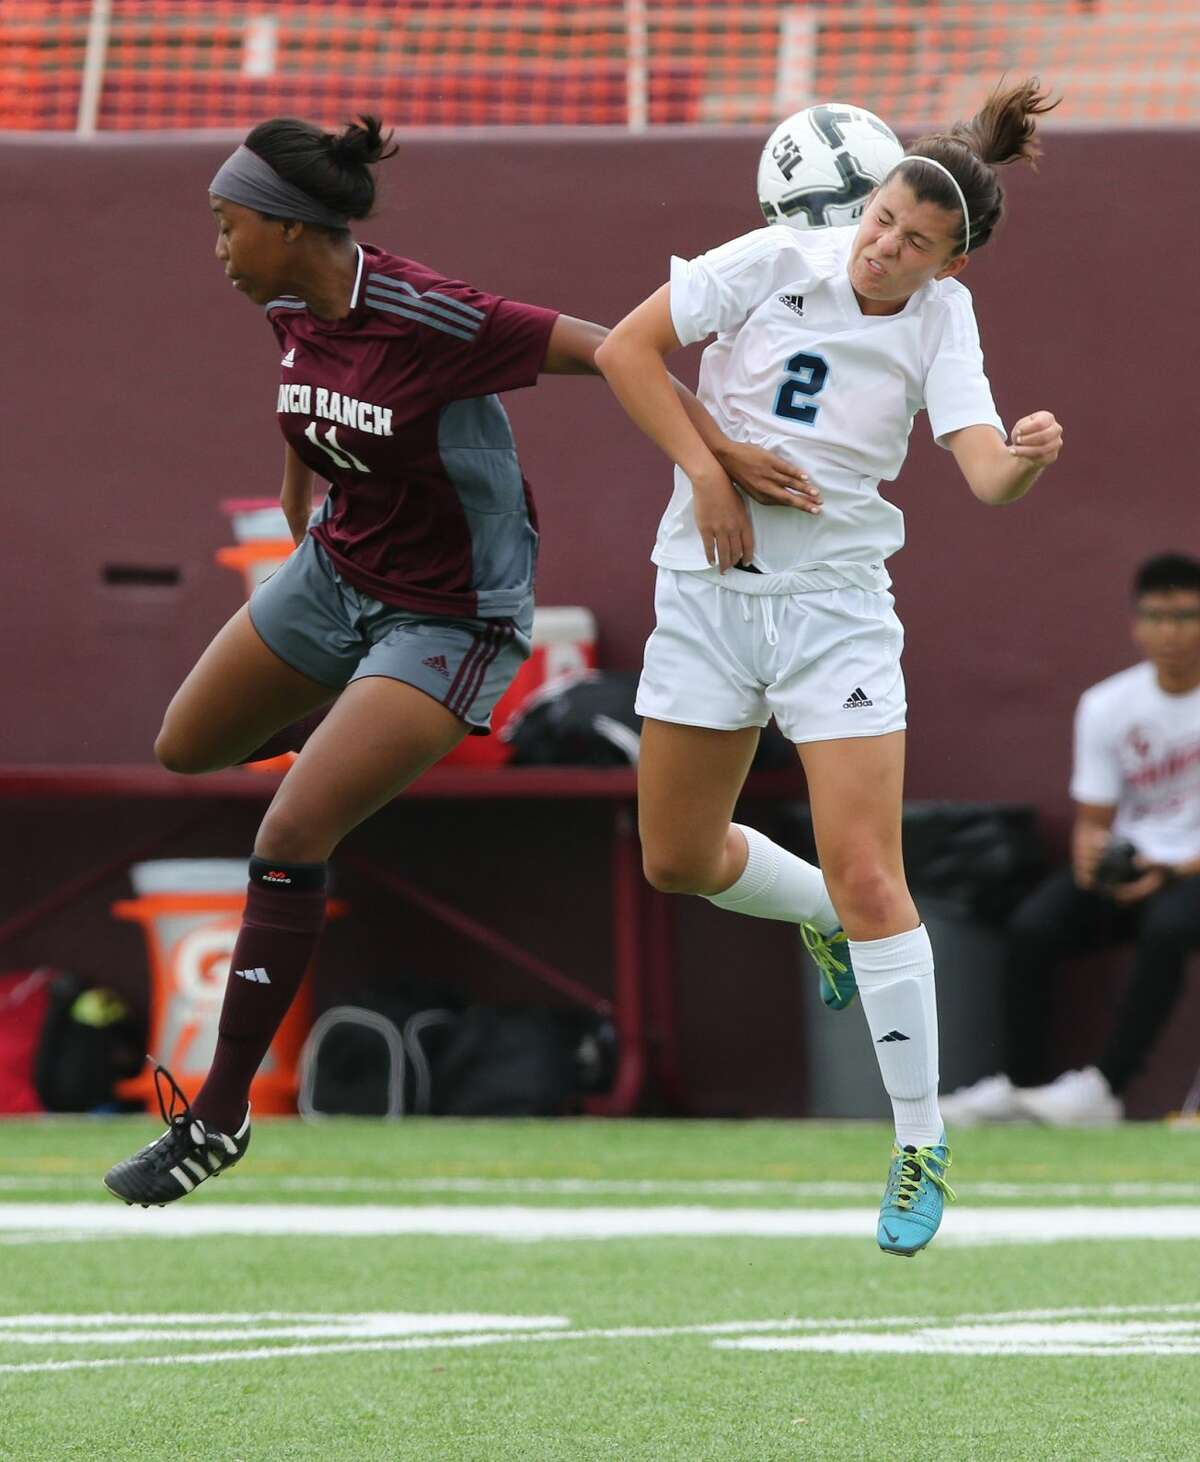 Catherine Boring (2) and Clements held La Porte scoreless through overtime and prevailed on penalty kicks as the Lady Rangers advanced to the Region III-6A quarterfinals.